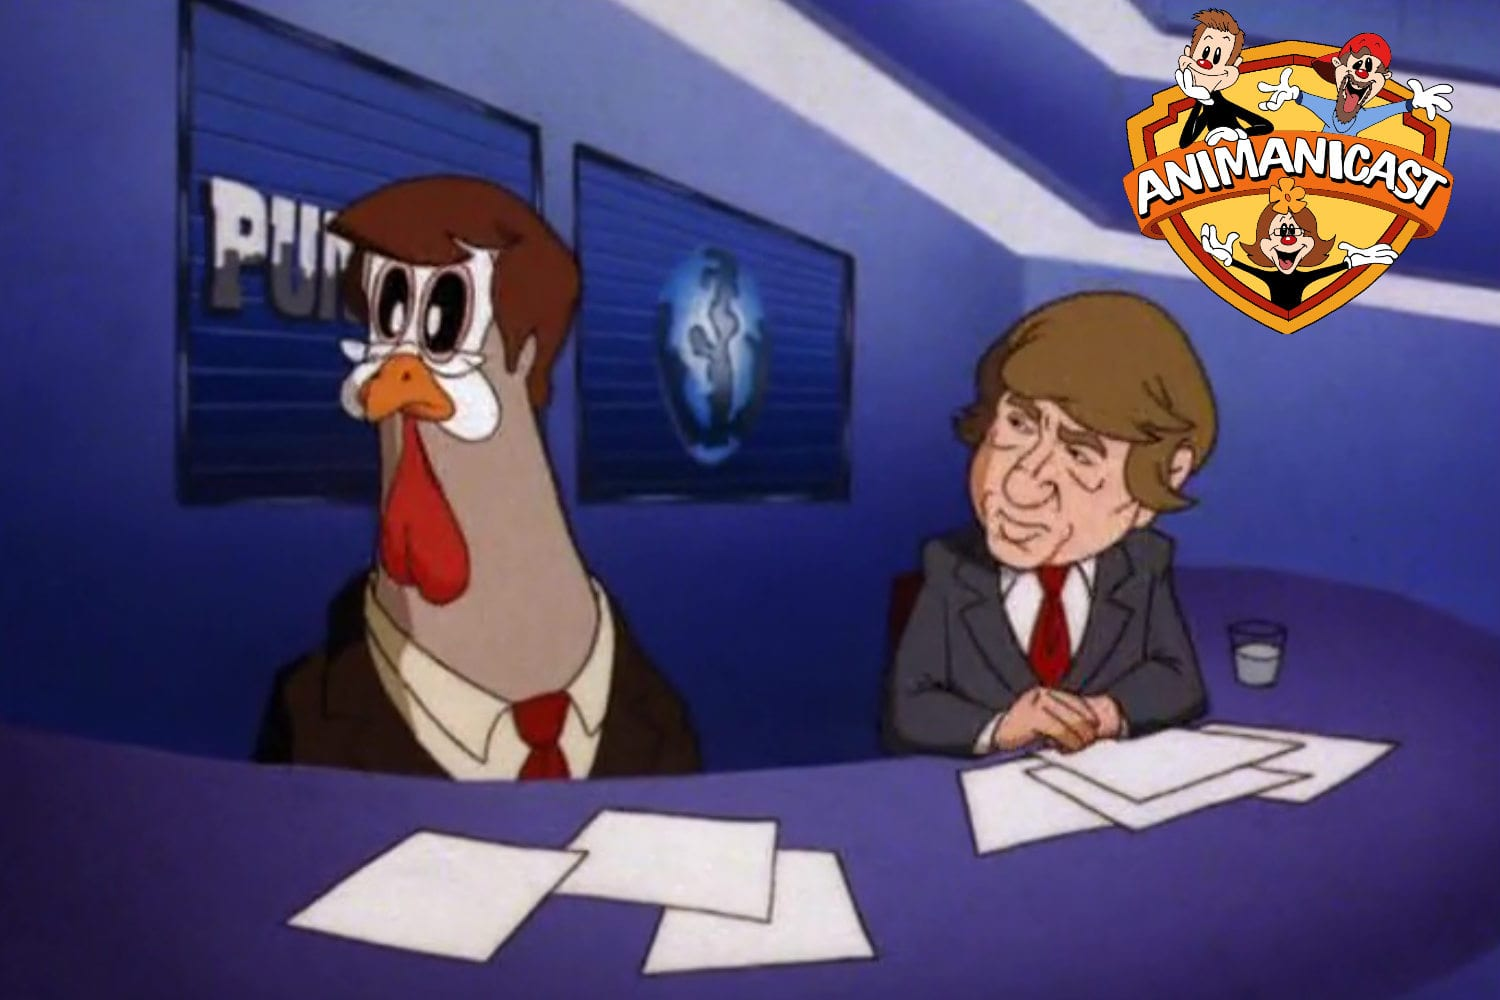 """Animanicast: Discussing """"The Christmas Tree"""" and """"The Prom"""" and """"Punchline"""" from Animaniacs Episode 98"""